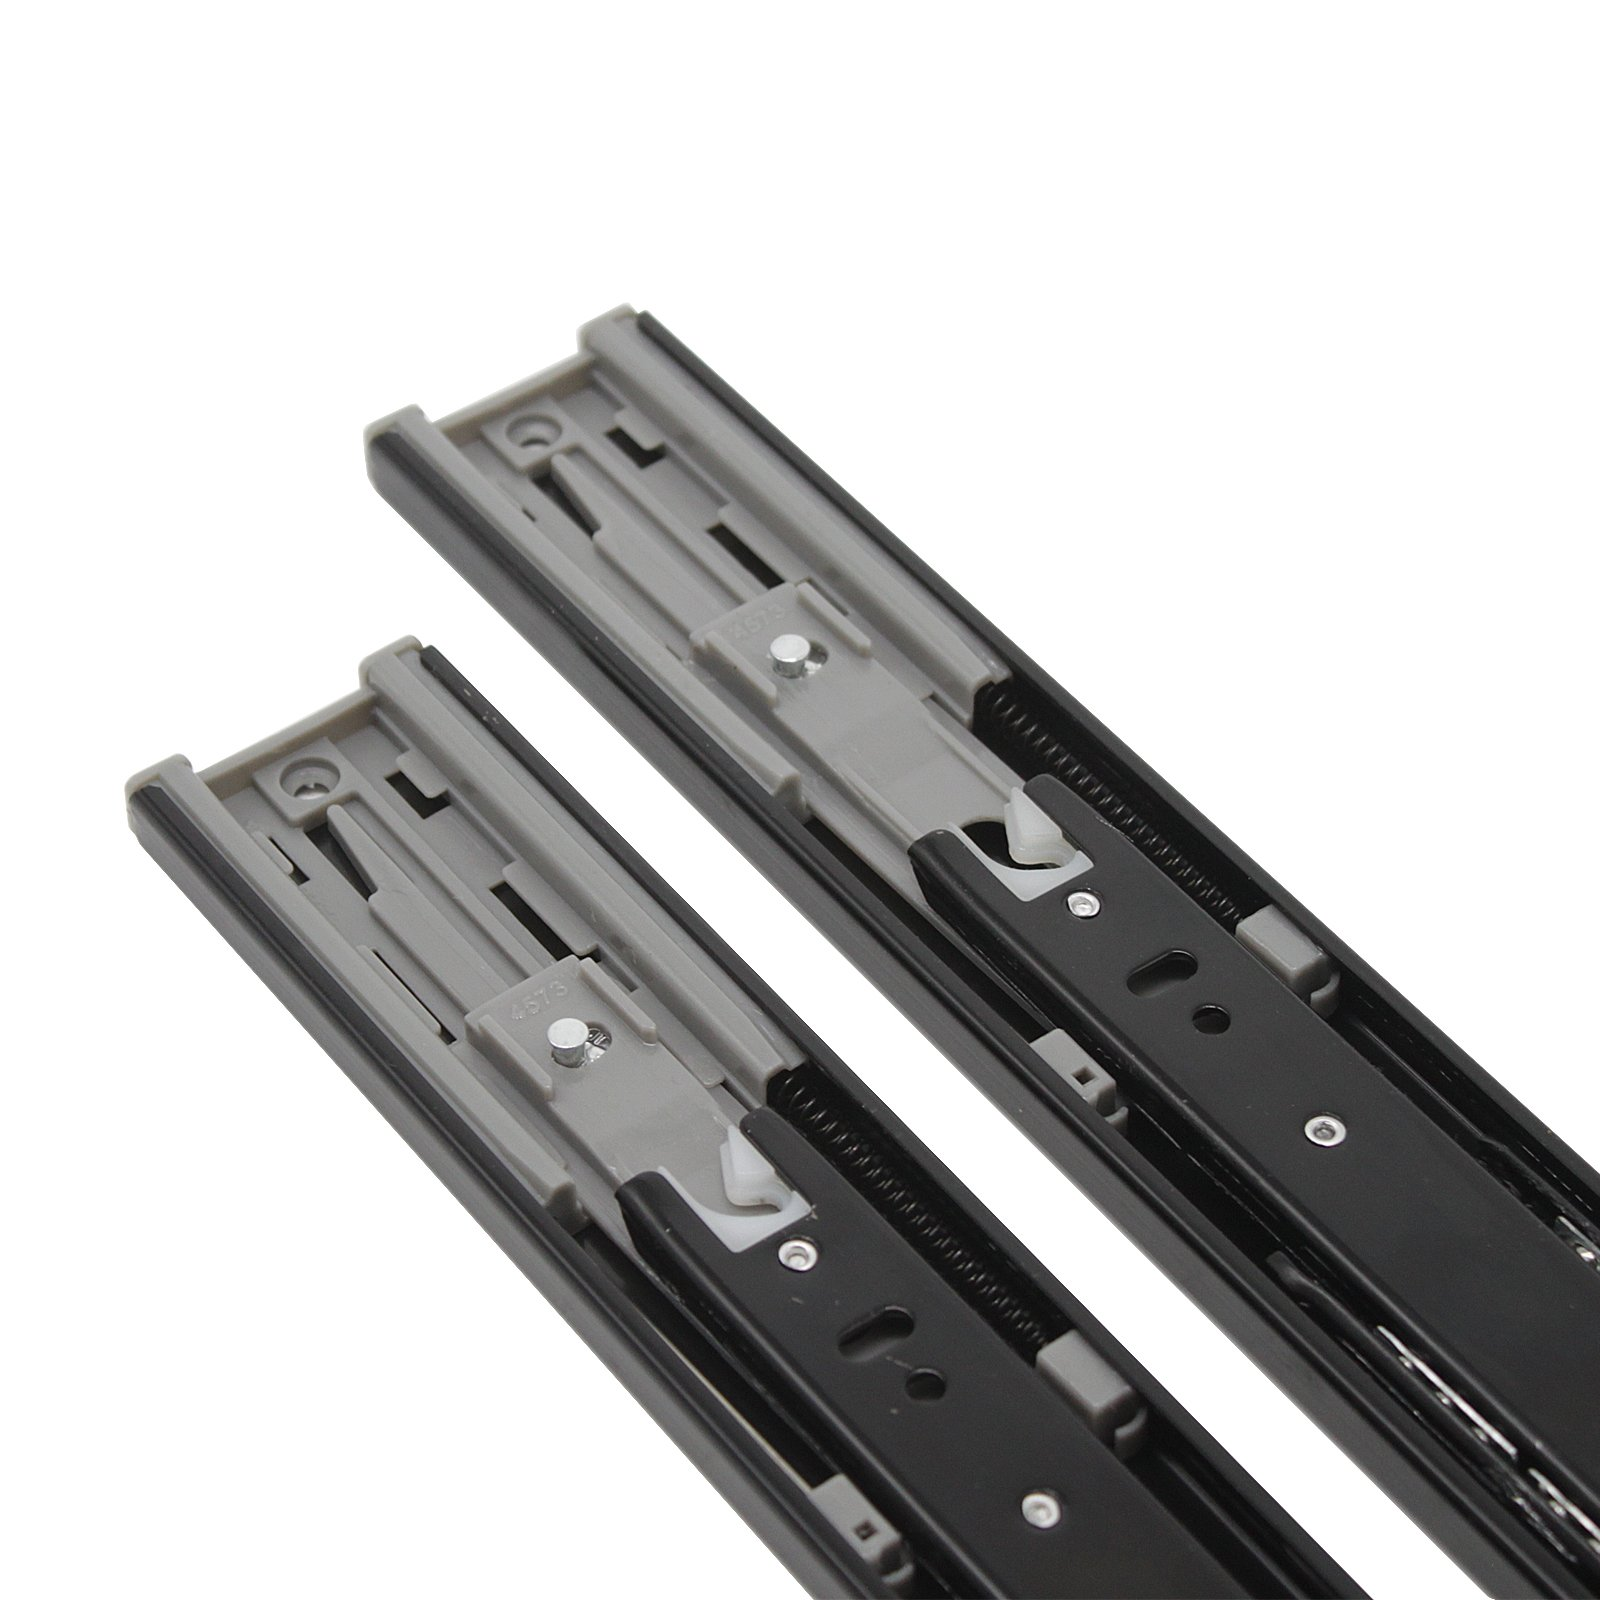 Probrico 10 Pair of 12 Inch Hardware Ball Bearing Side Mount Drawer Slides, Full Extension, Available in 12'',14'',16'',18'',20'',22'', 24'' Lengths by Probrico (Image #4)